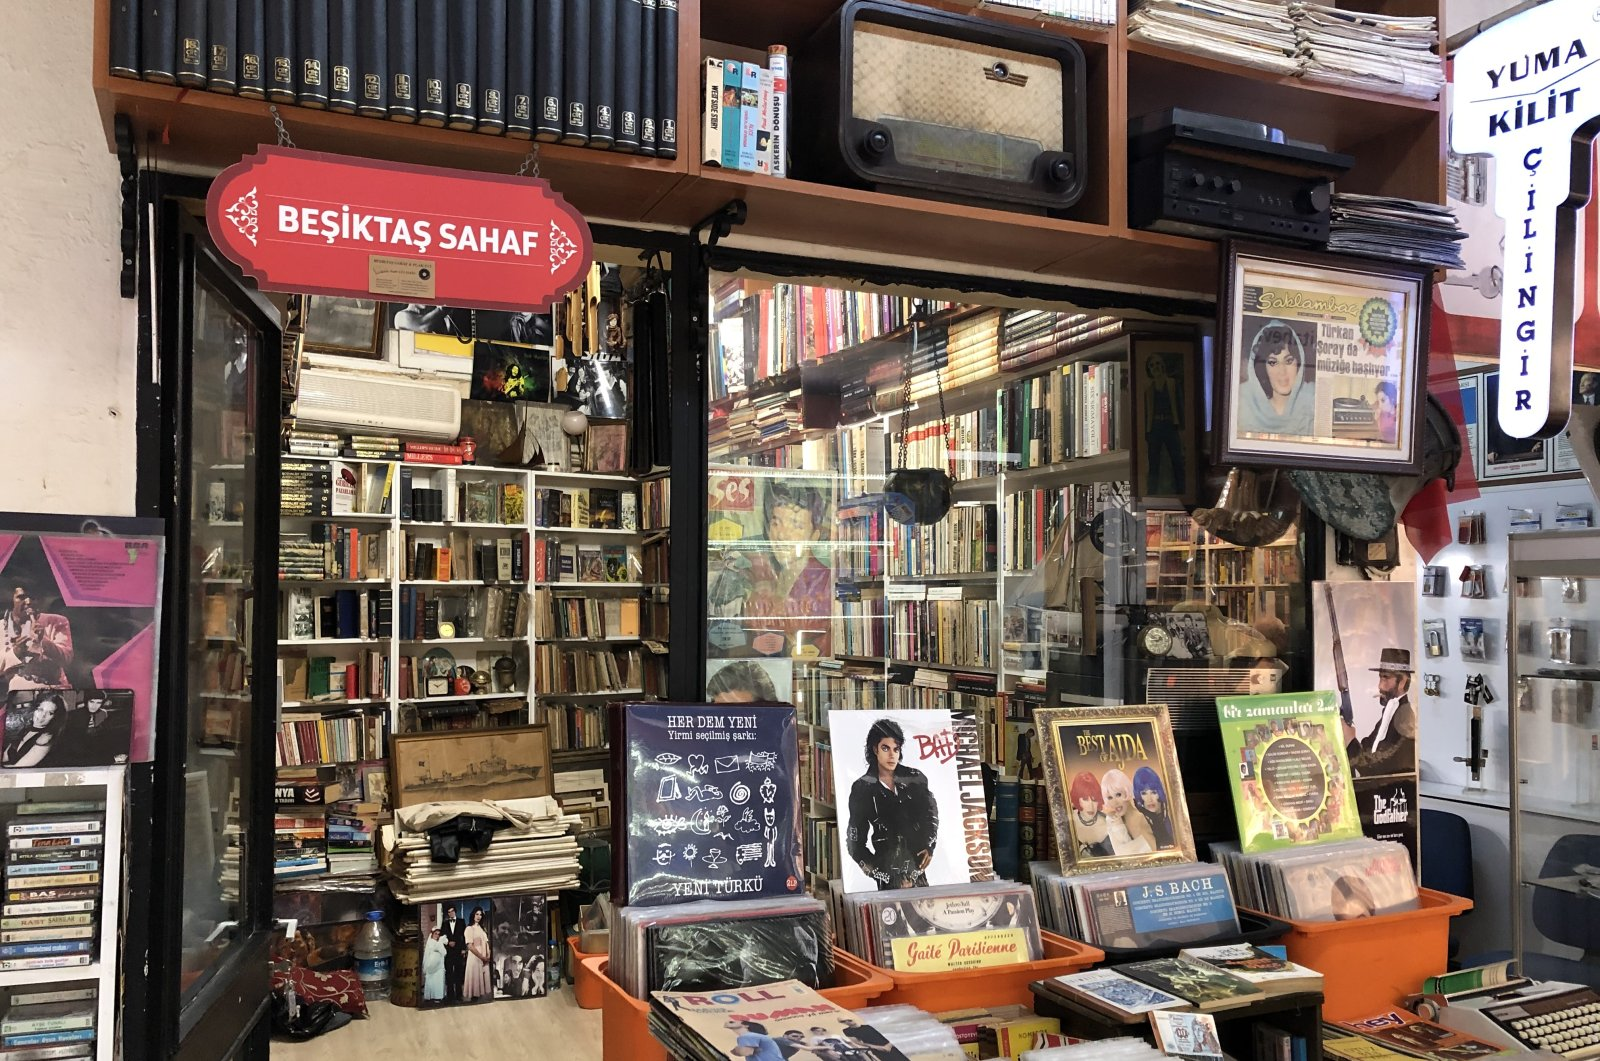 Beşiktaş Sahaf and Vinyl House is the likeliest option to visit if you are looking for a secondhand book store in the Beşiktaş district. (Photo by Matt Hanson)